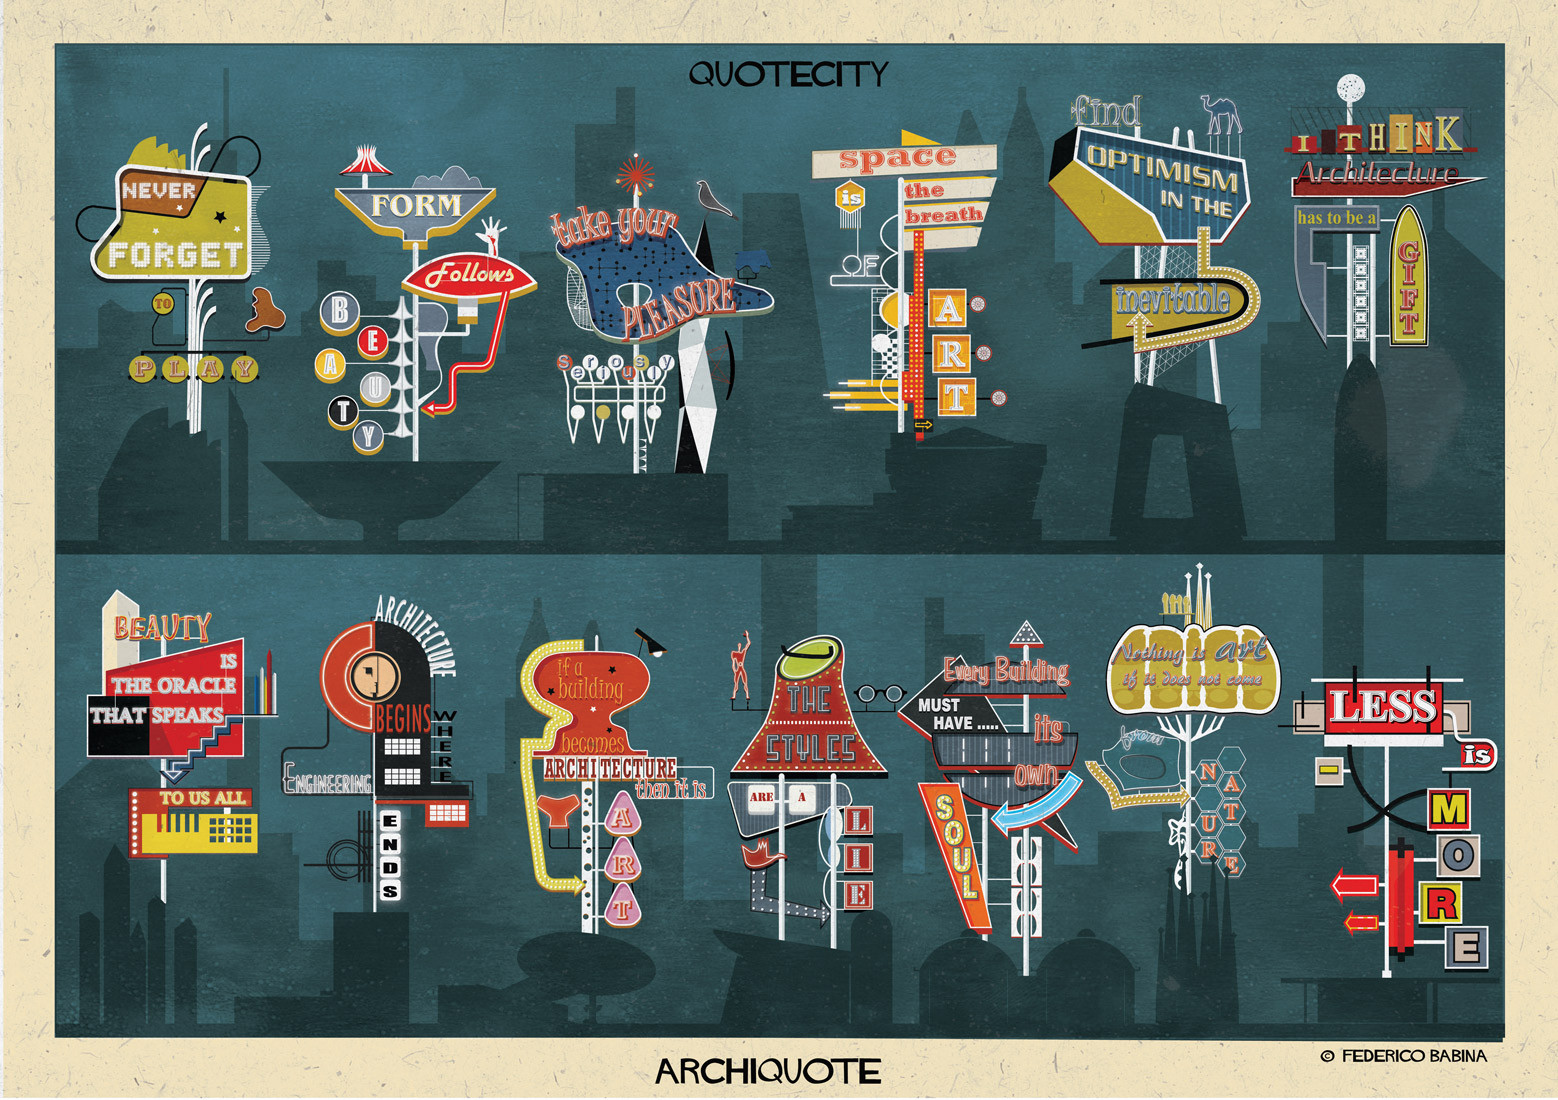 ARCHIQUOTE: 13 Billboards Advertising Architecture's Most Influential Concepts, Courtesy of Federico Babina